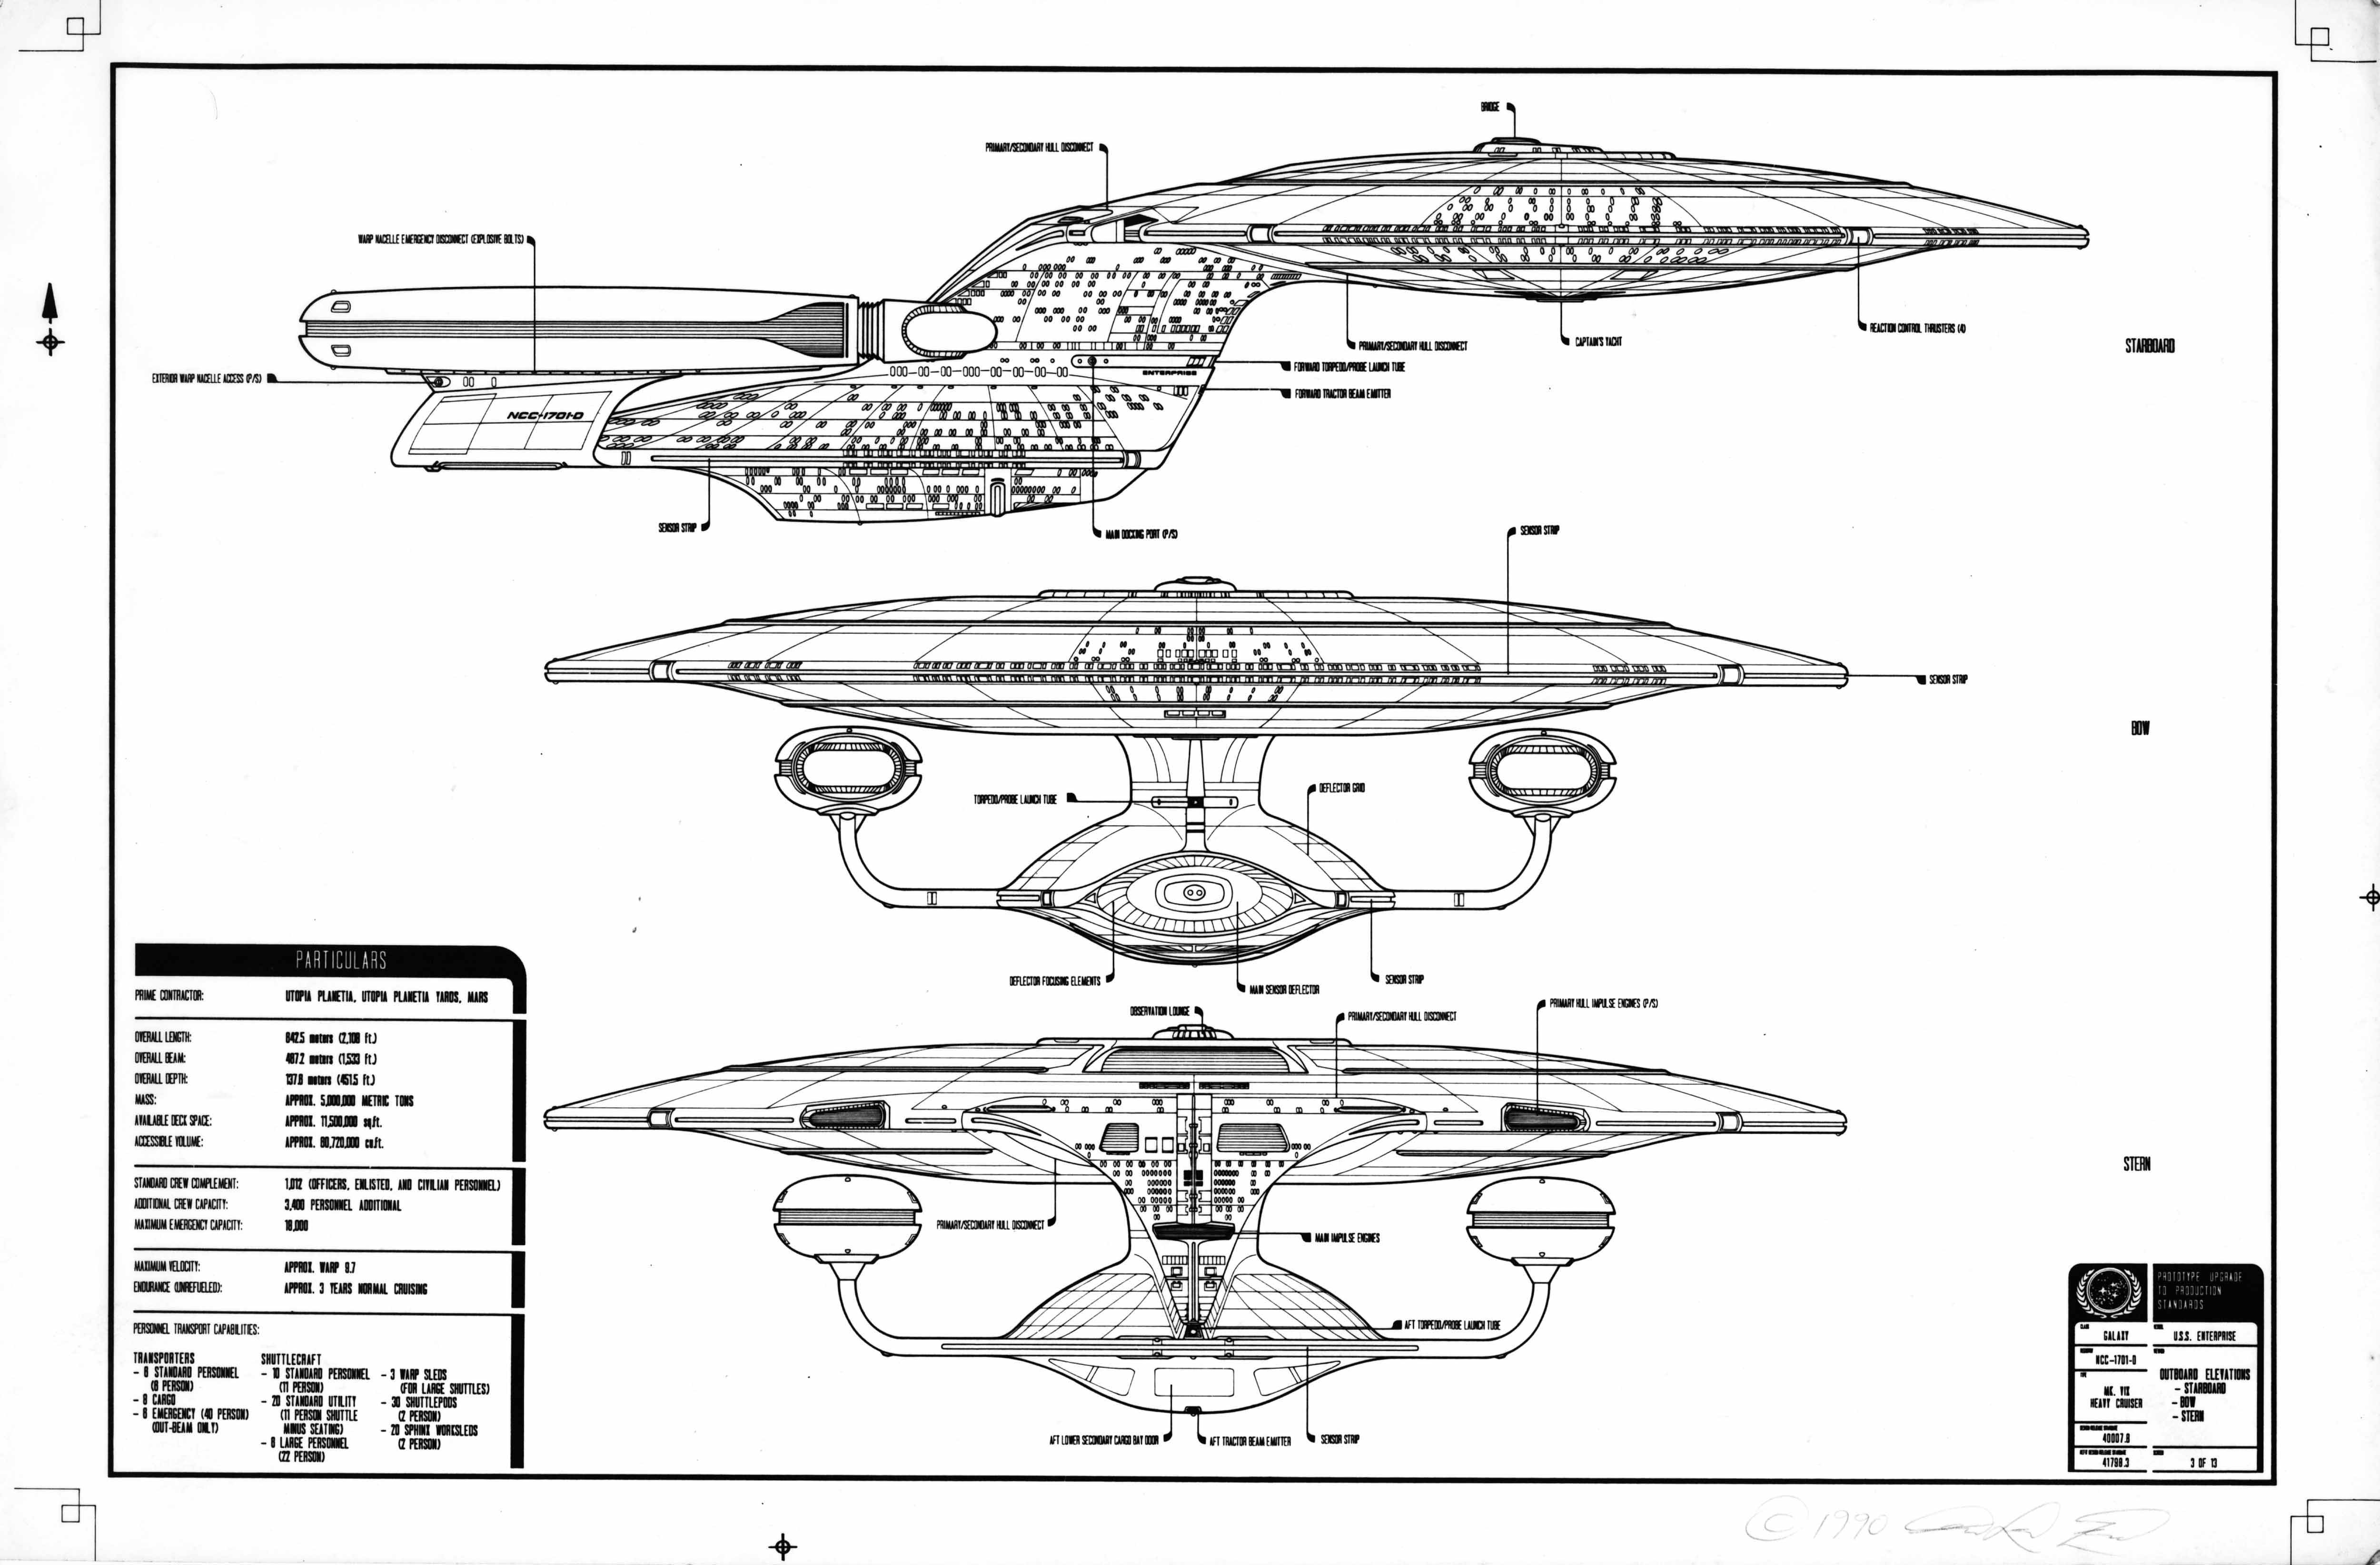 the original ed whitefire enterprise ncc-1701-d blueprints, Schematic